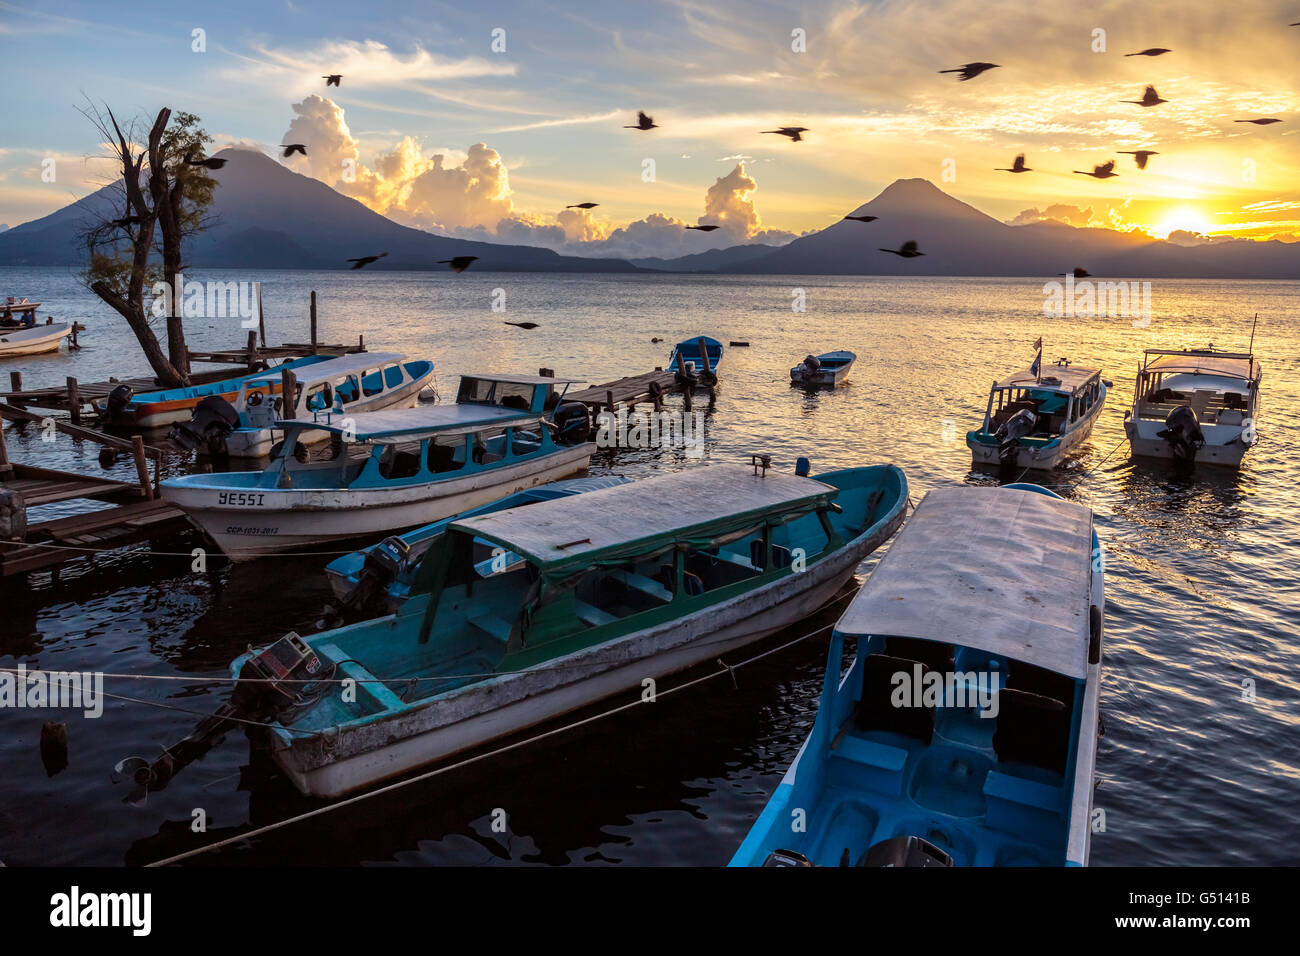 Birds fly by moored Water Taxis at the docks in Panajachel as the sun sets over the Volcanoes of Lago de Atitlan - Stock Image